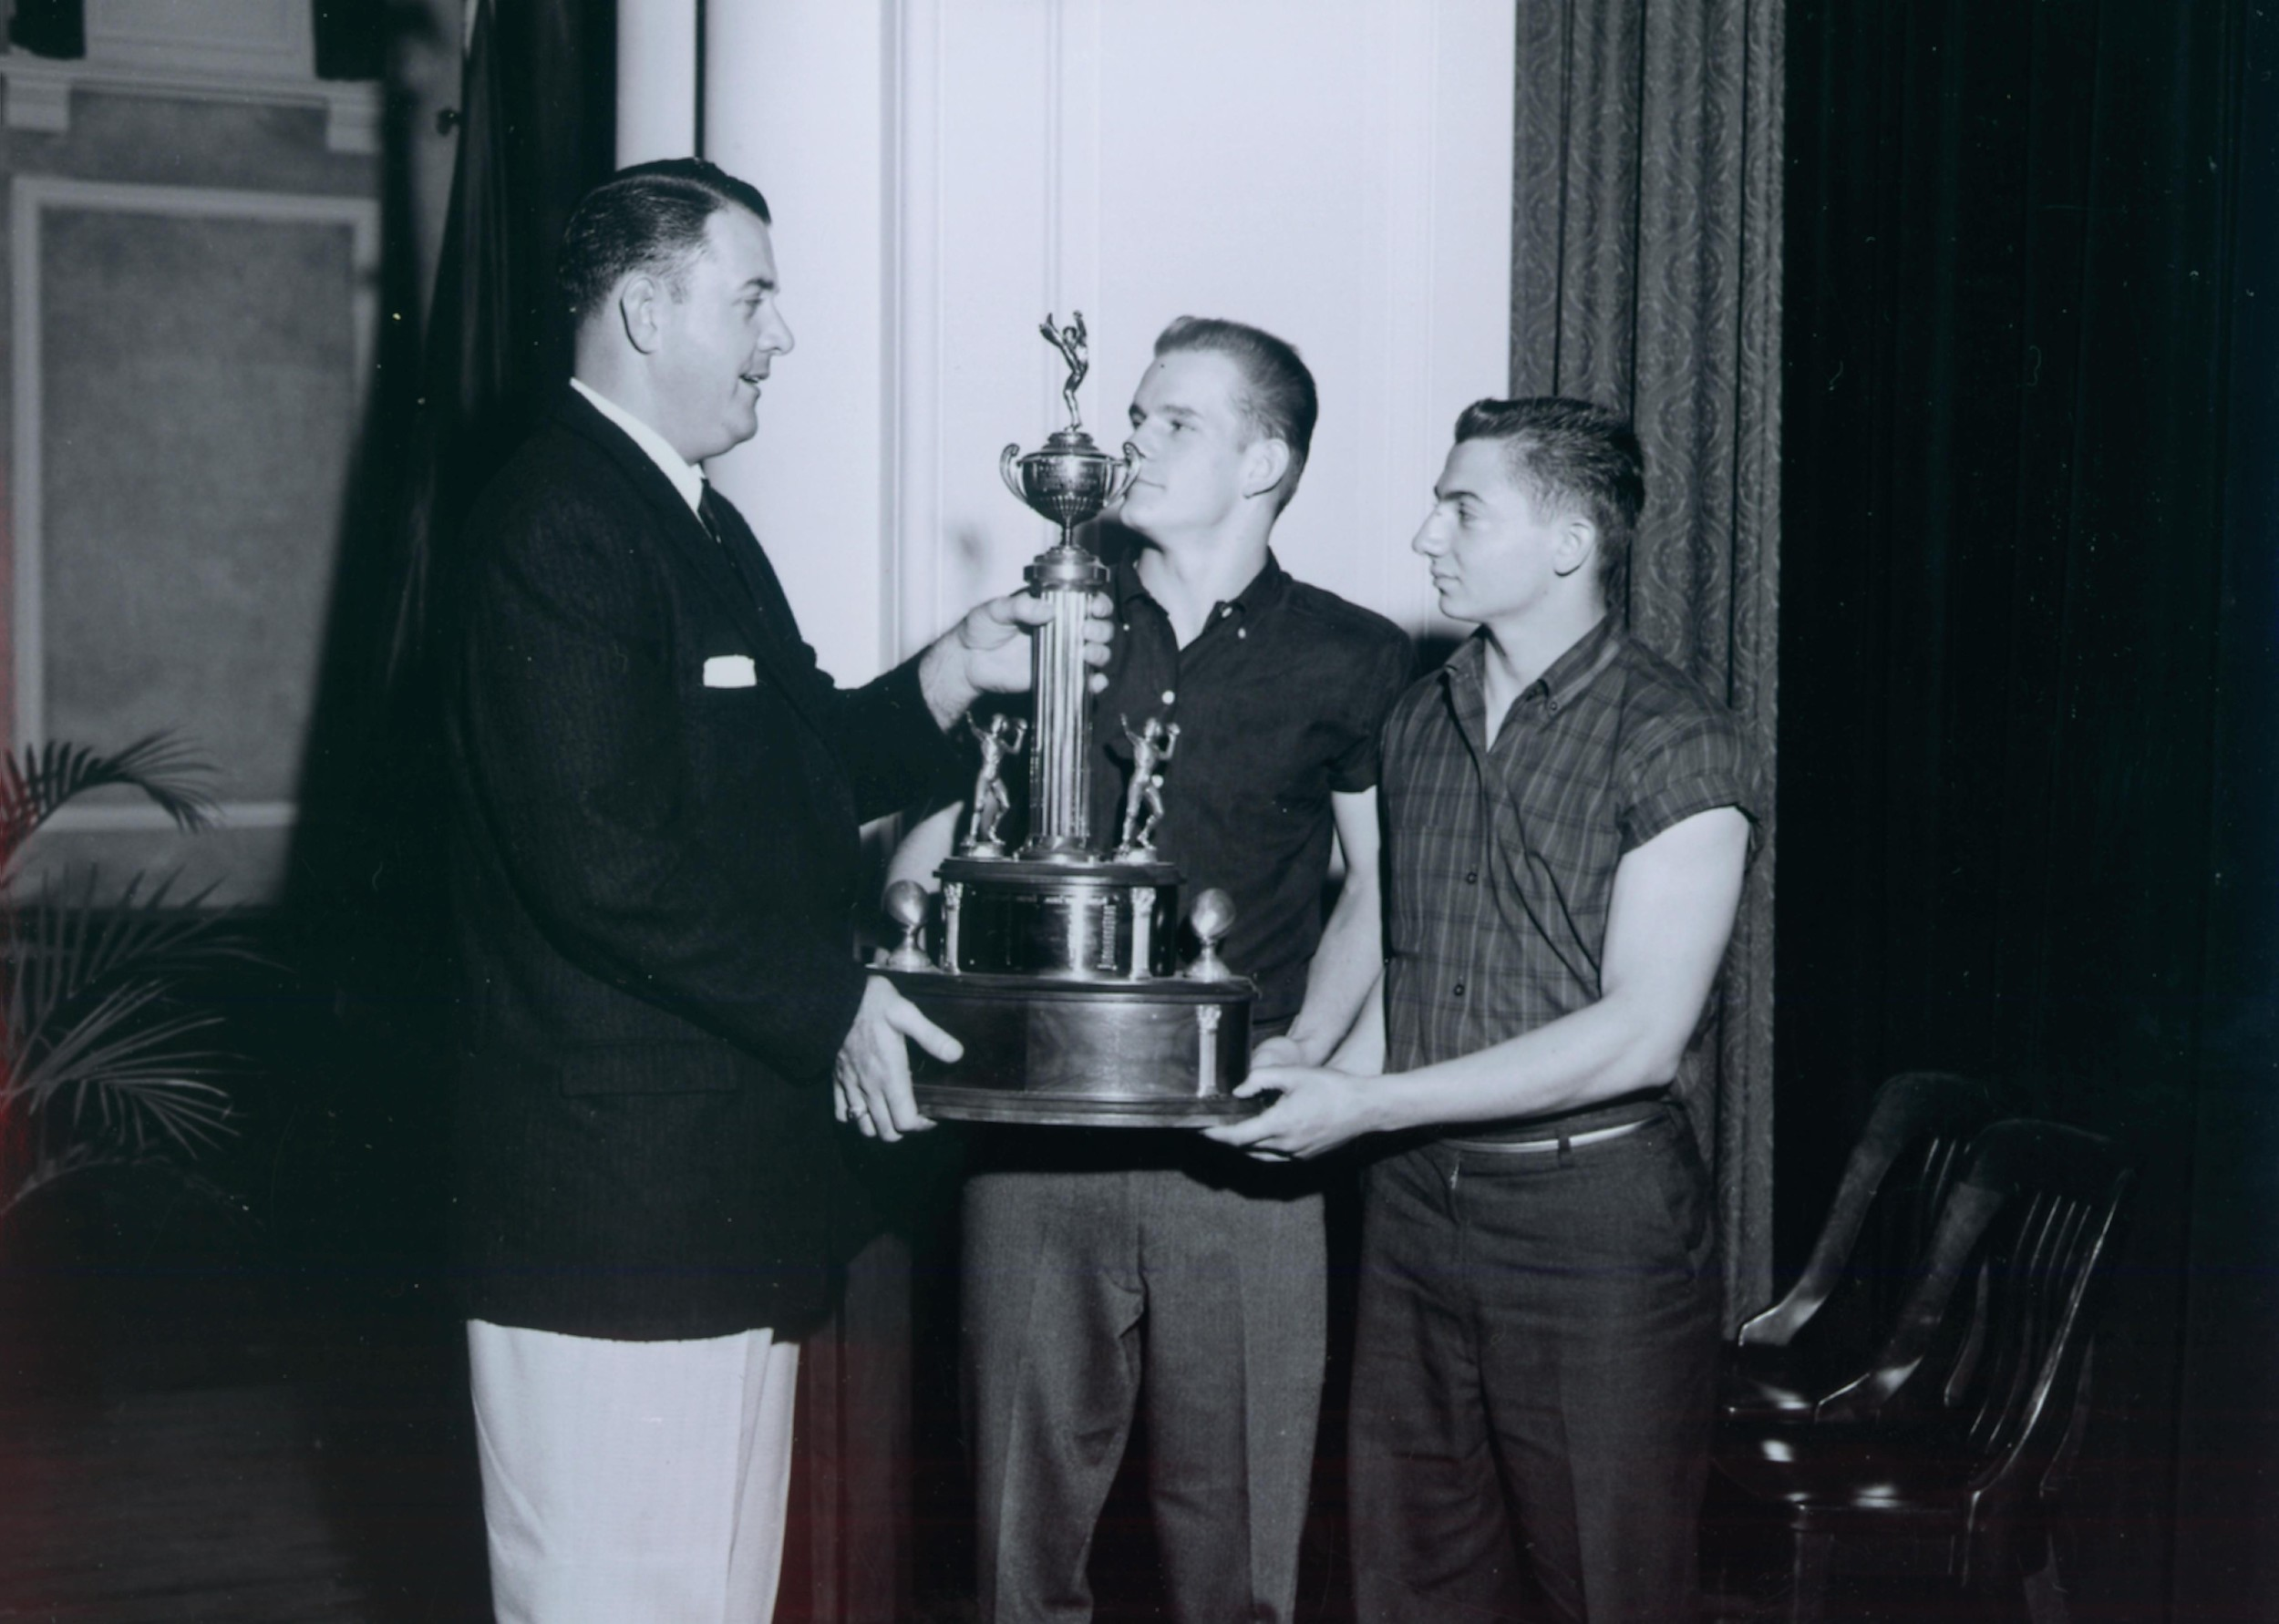 John O'Brien and Dick Purcell, Cocoa Bean Trophy 1960-61-1.jpg